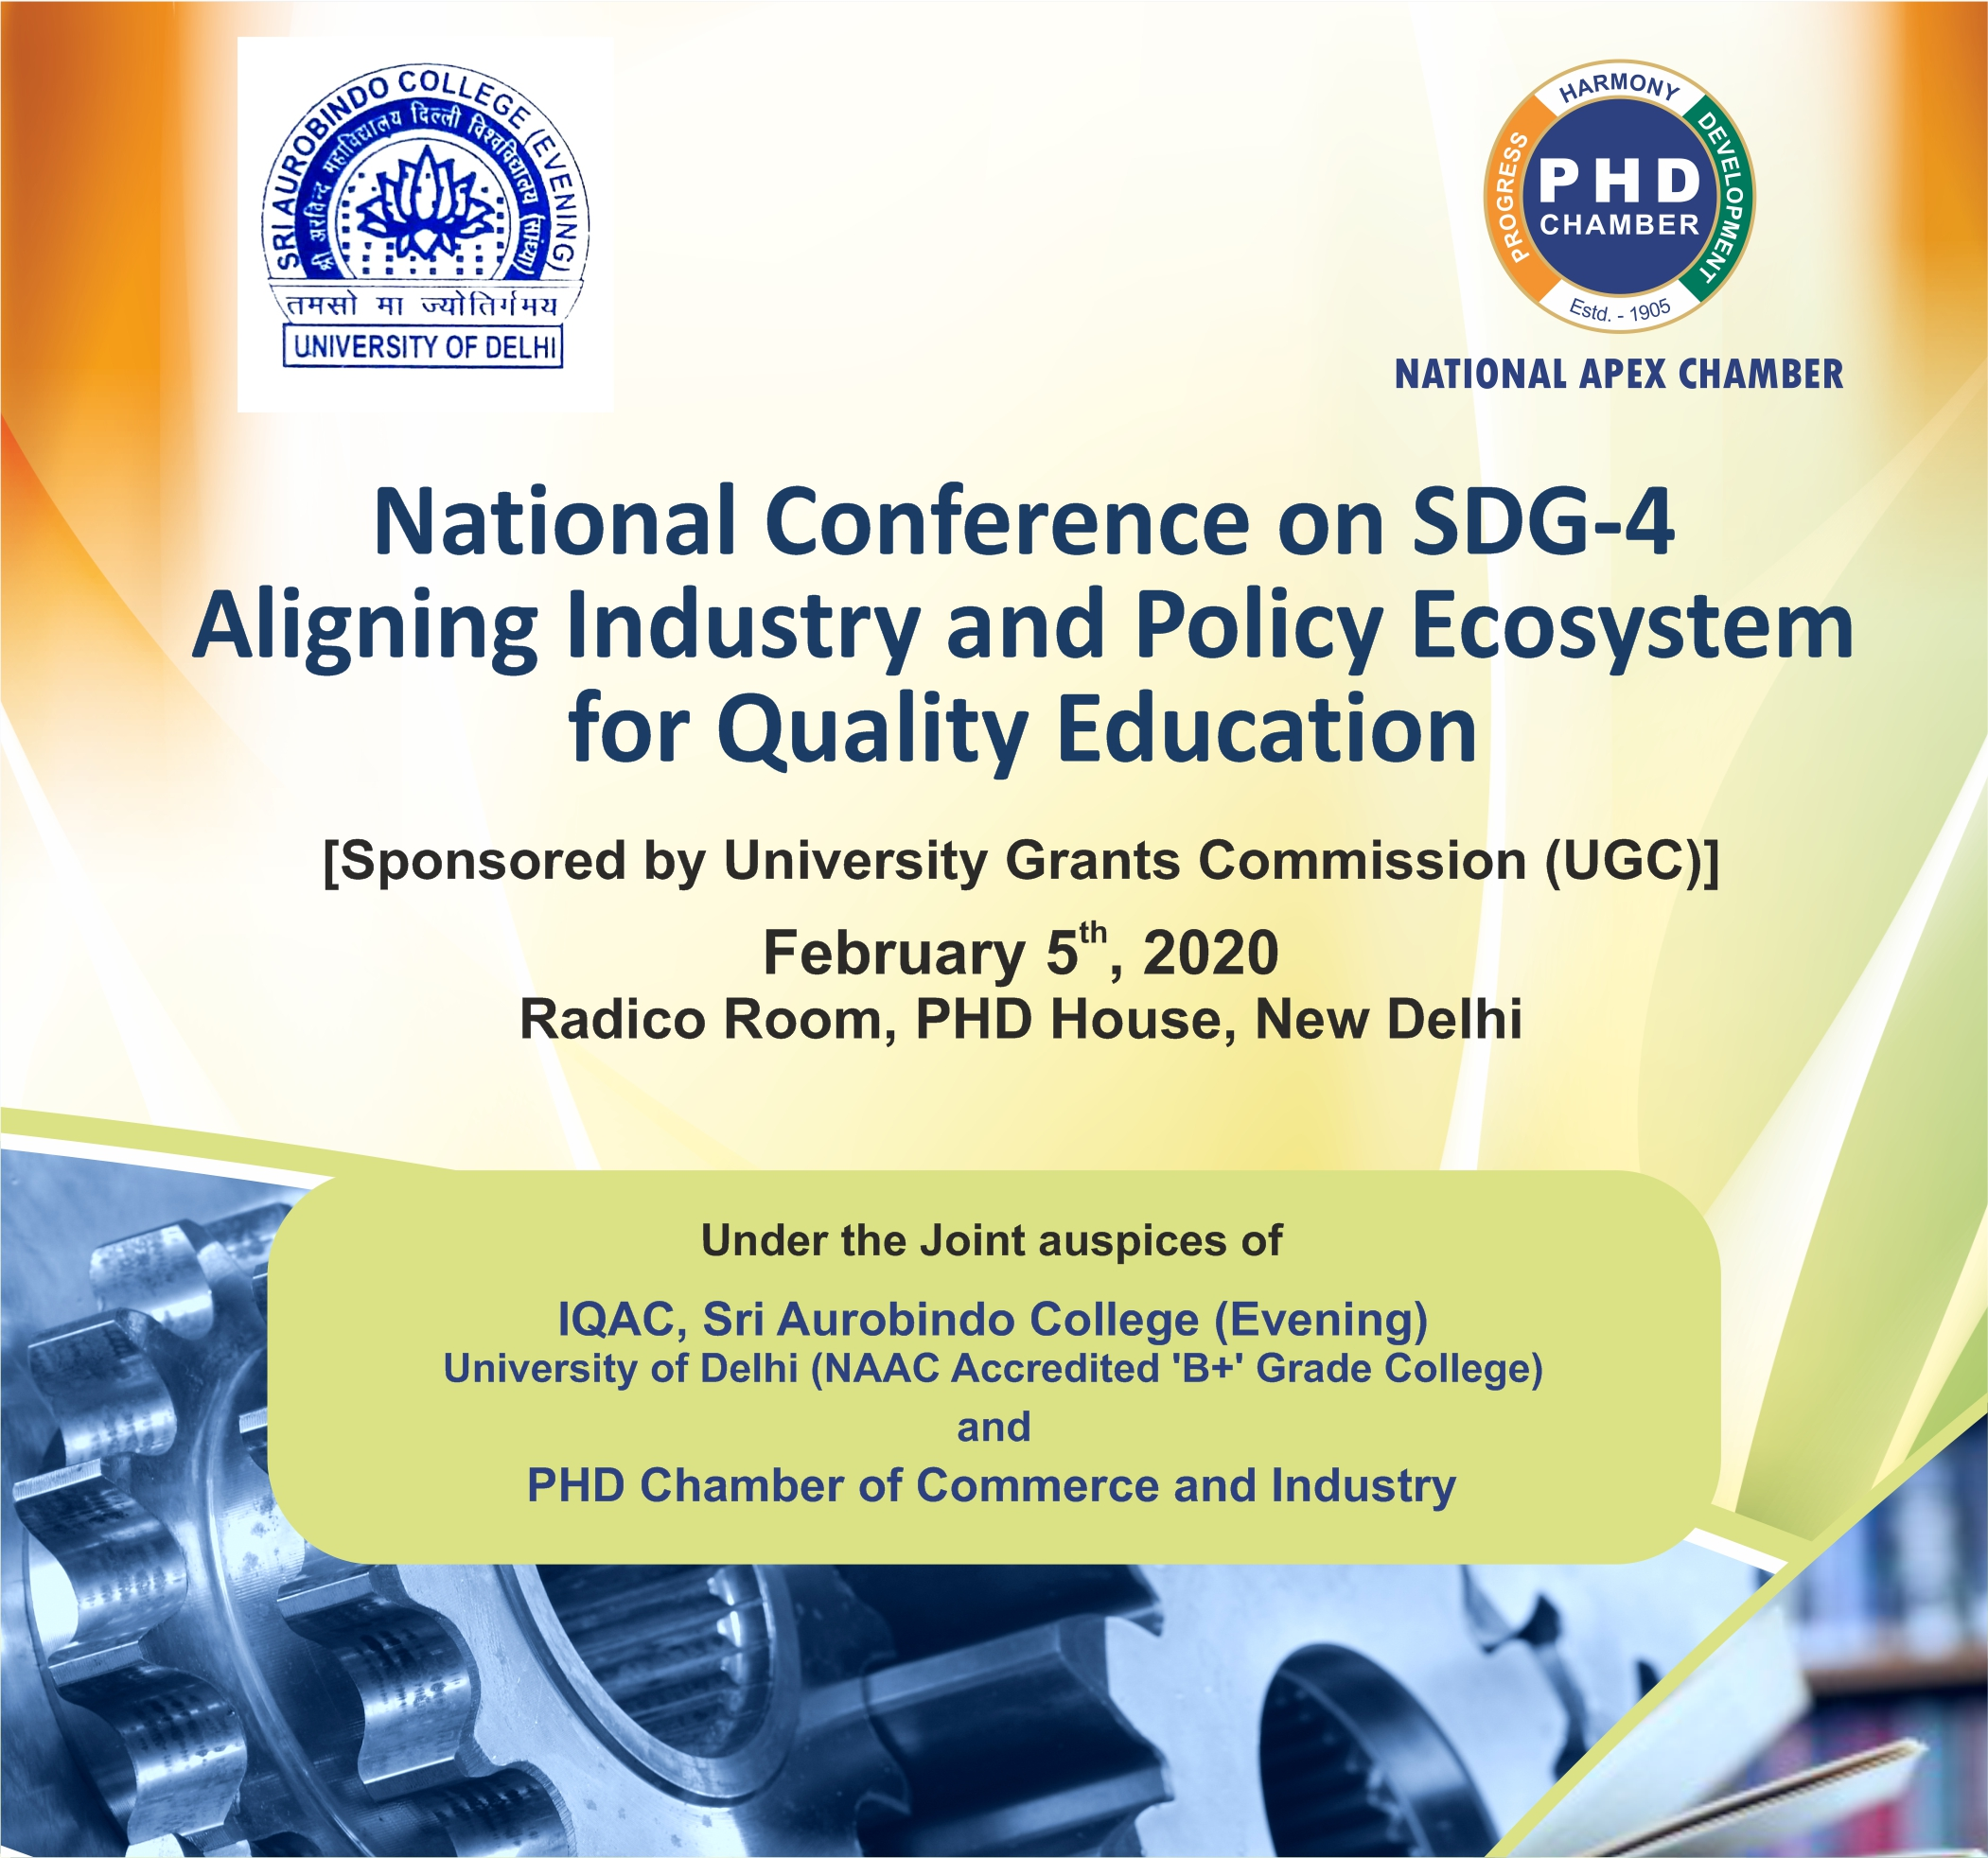 National Conference on SDG-4